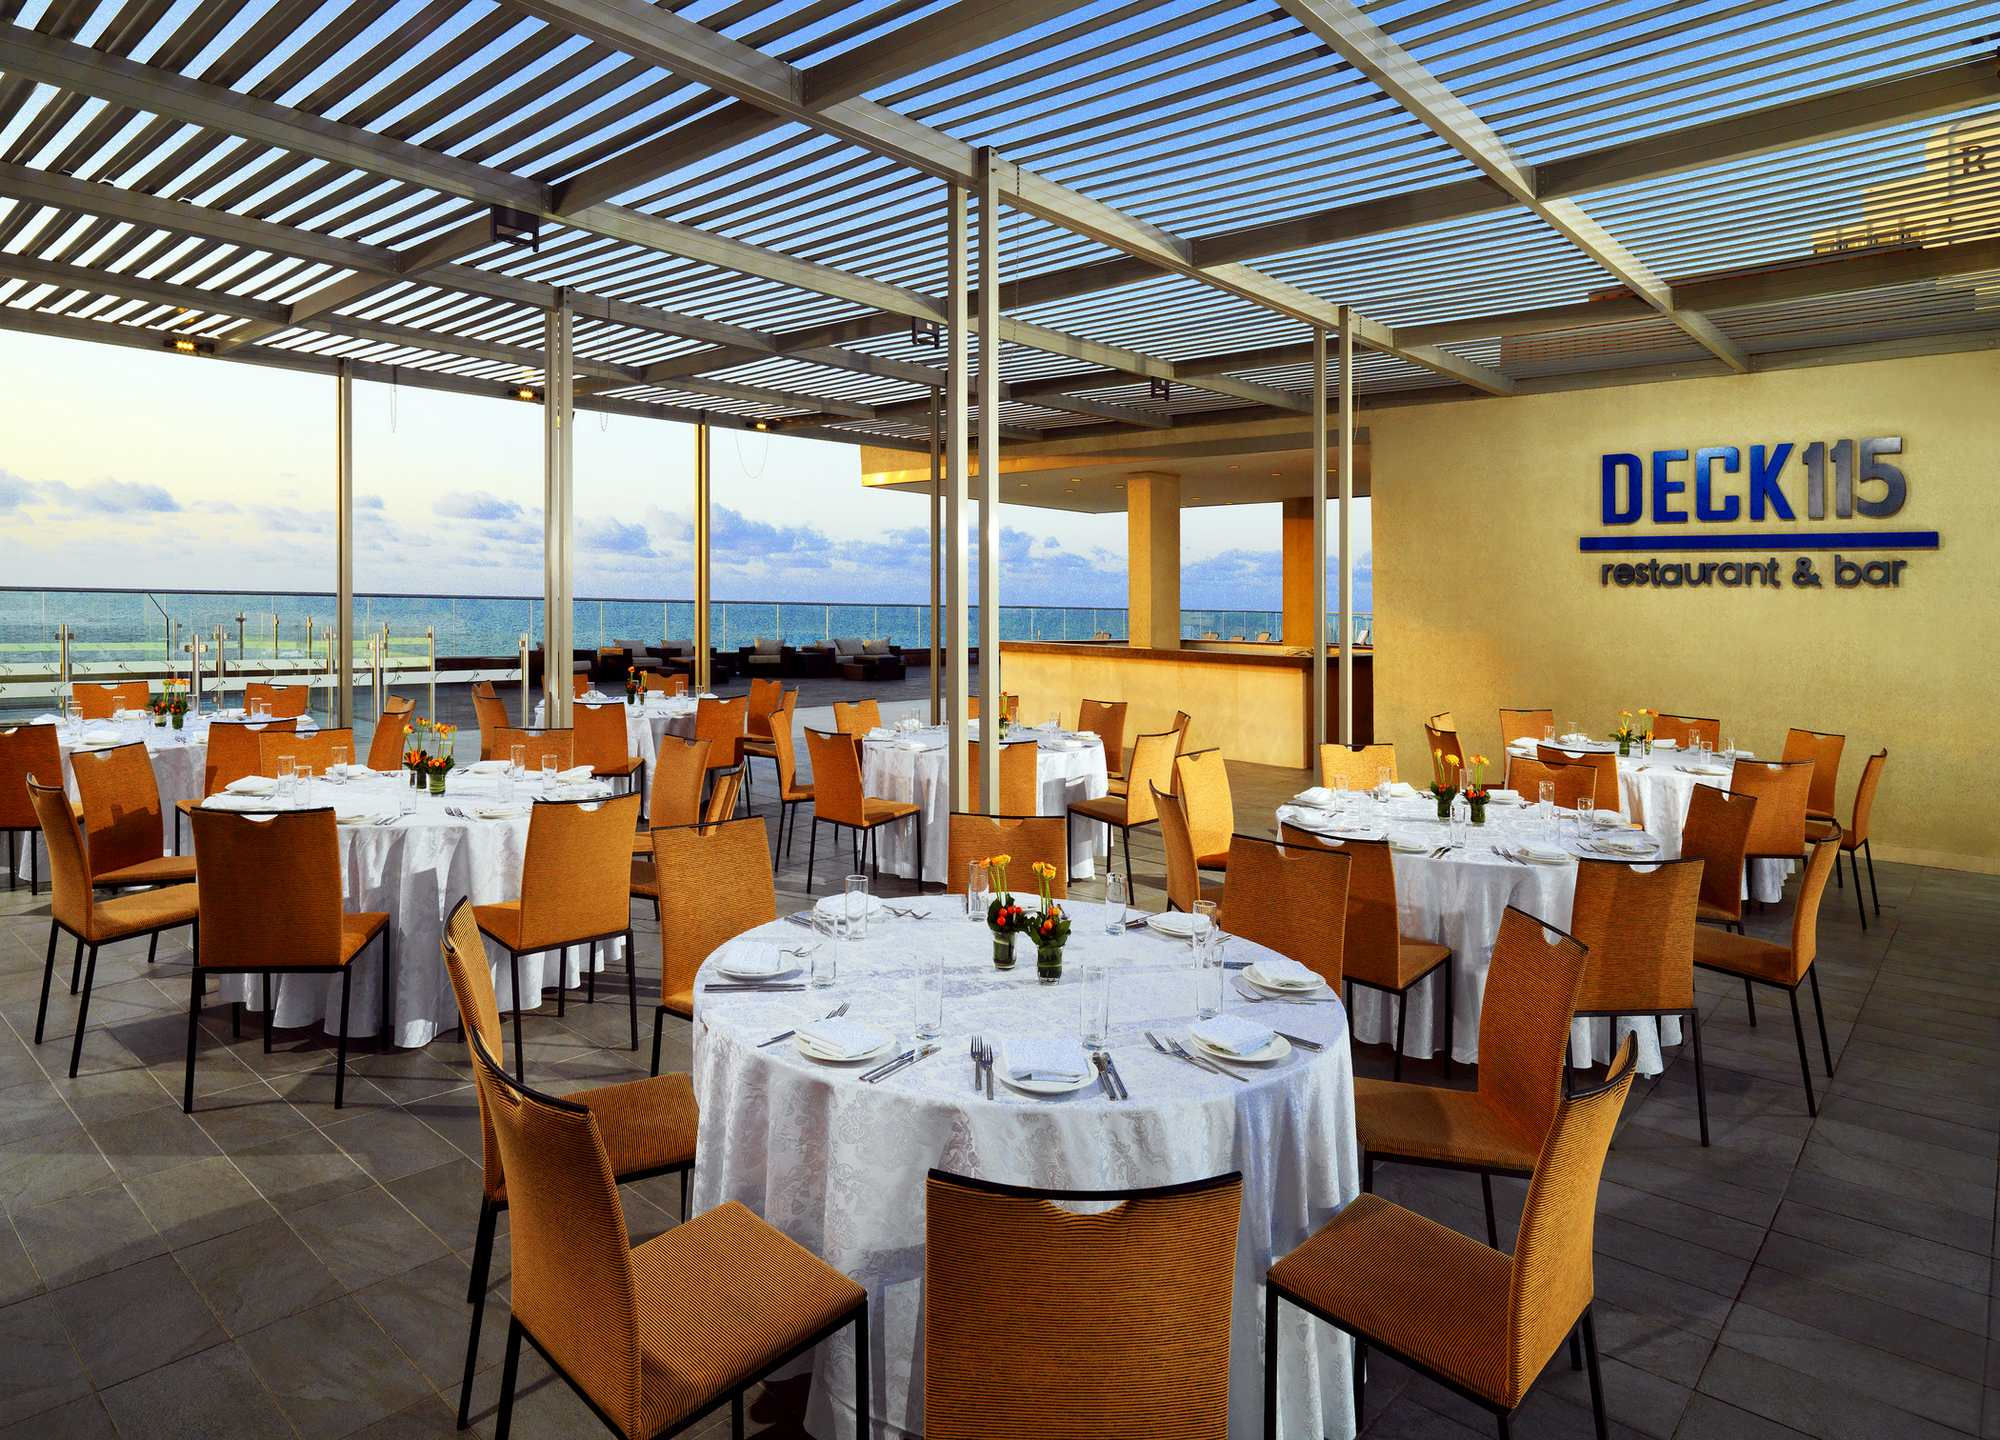 Deck 115, Pool Restaurant & Bar